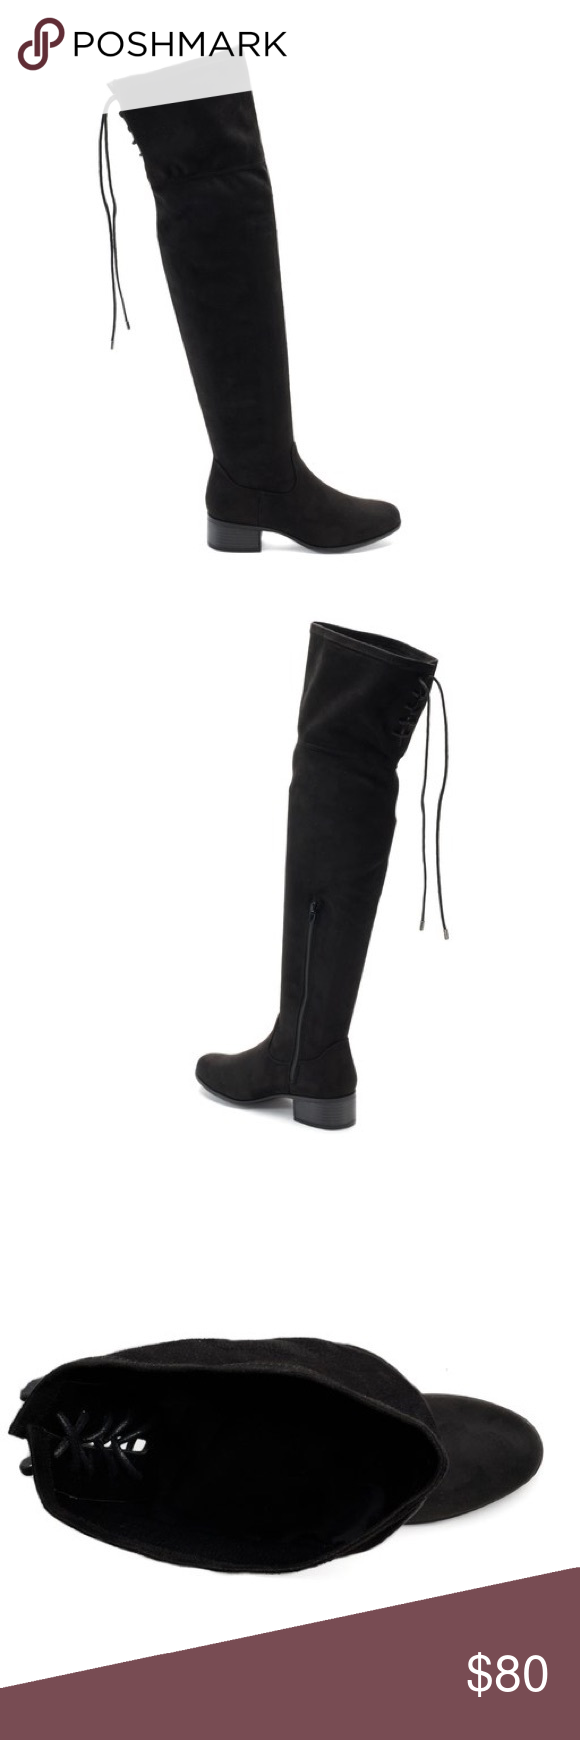 f9d0cdb409d Madden NYC Black Over The Knee Tall Tie Boots 6 Make a stunning statement  with these